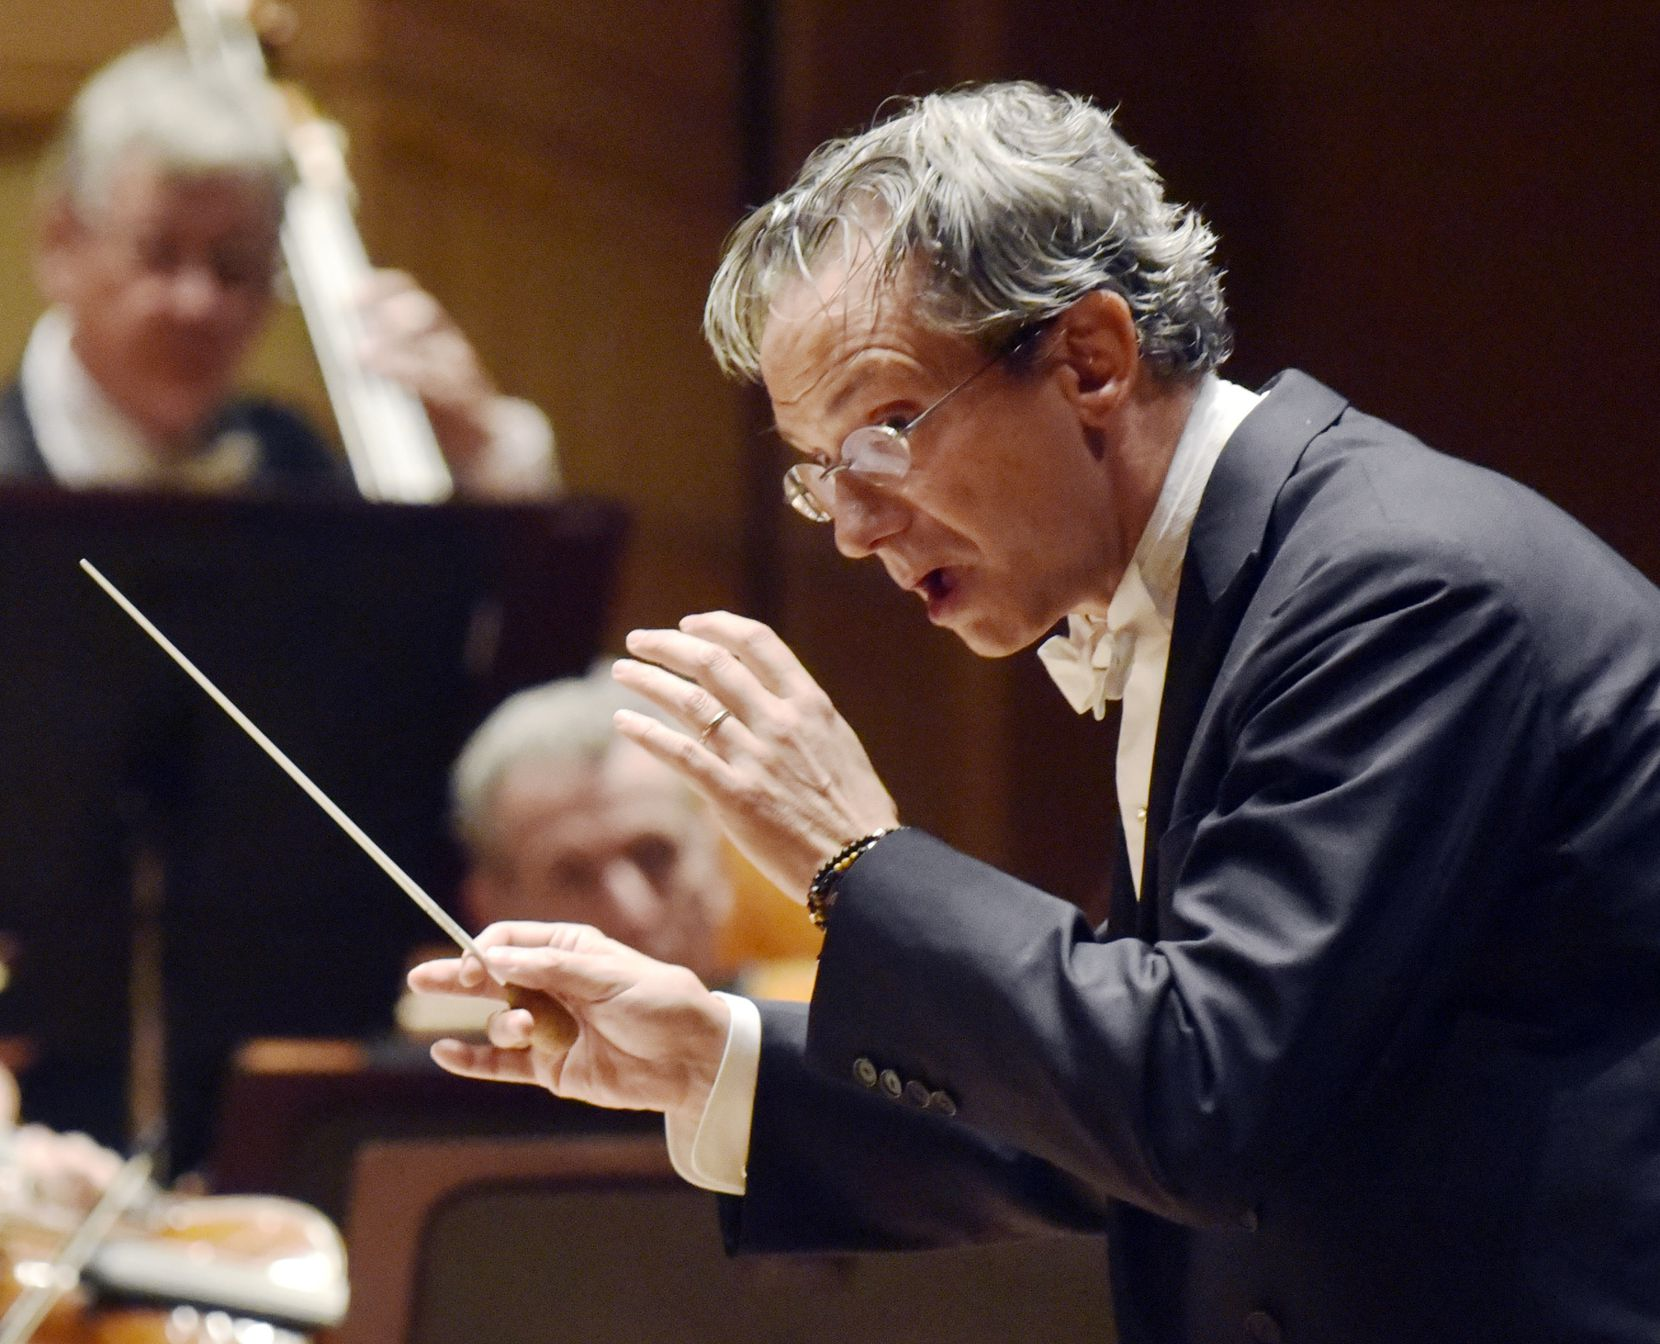 Fabio Luisi leads the DSO in a performance of Beethoven's Fourth Piano Concerto at the Morton H. Meyerson Symphony Center on March 8, 2018.